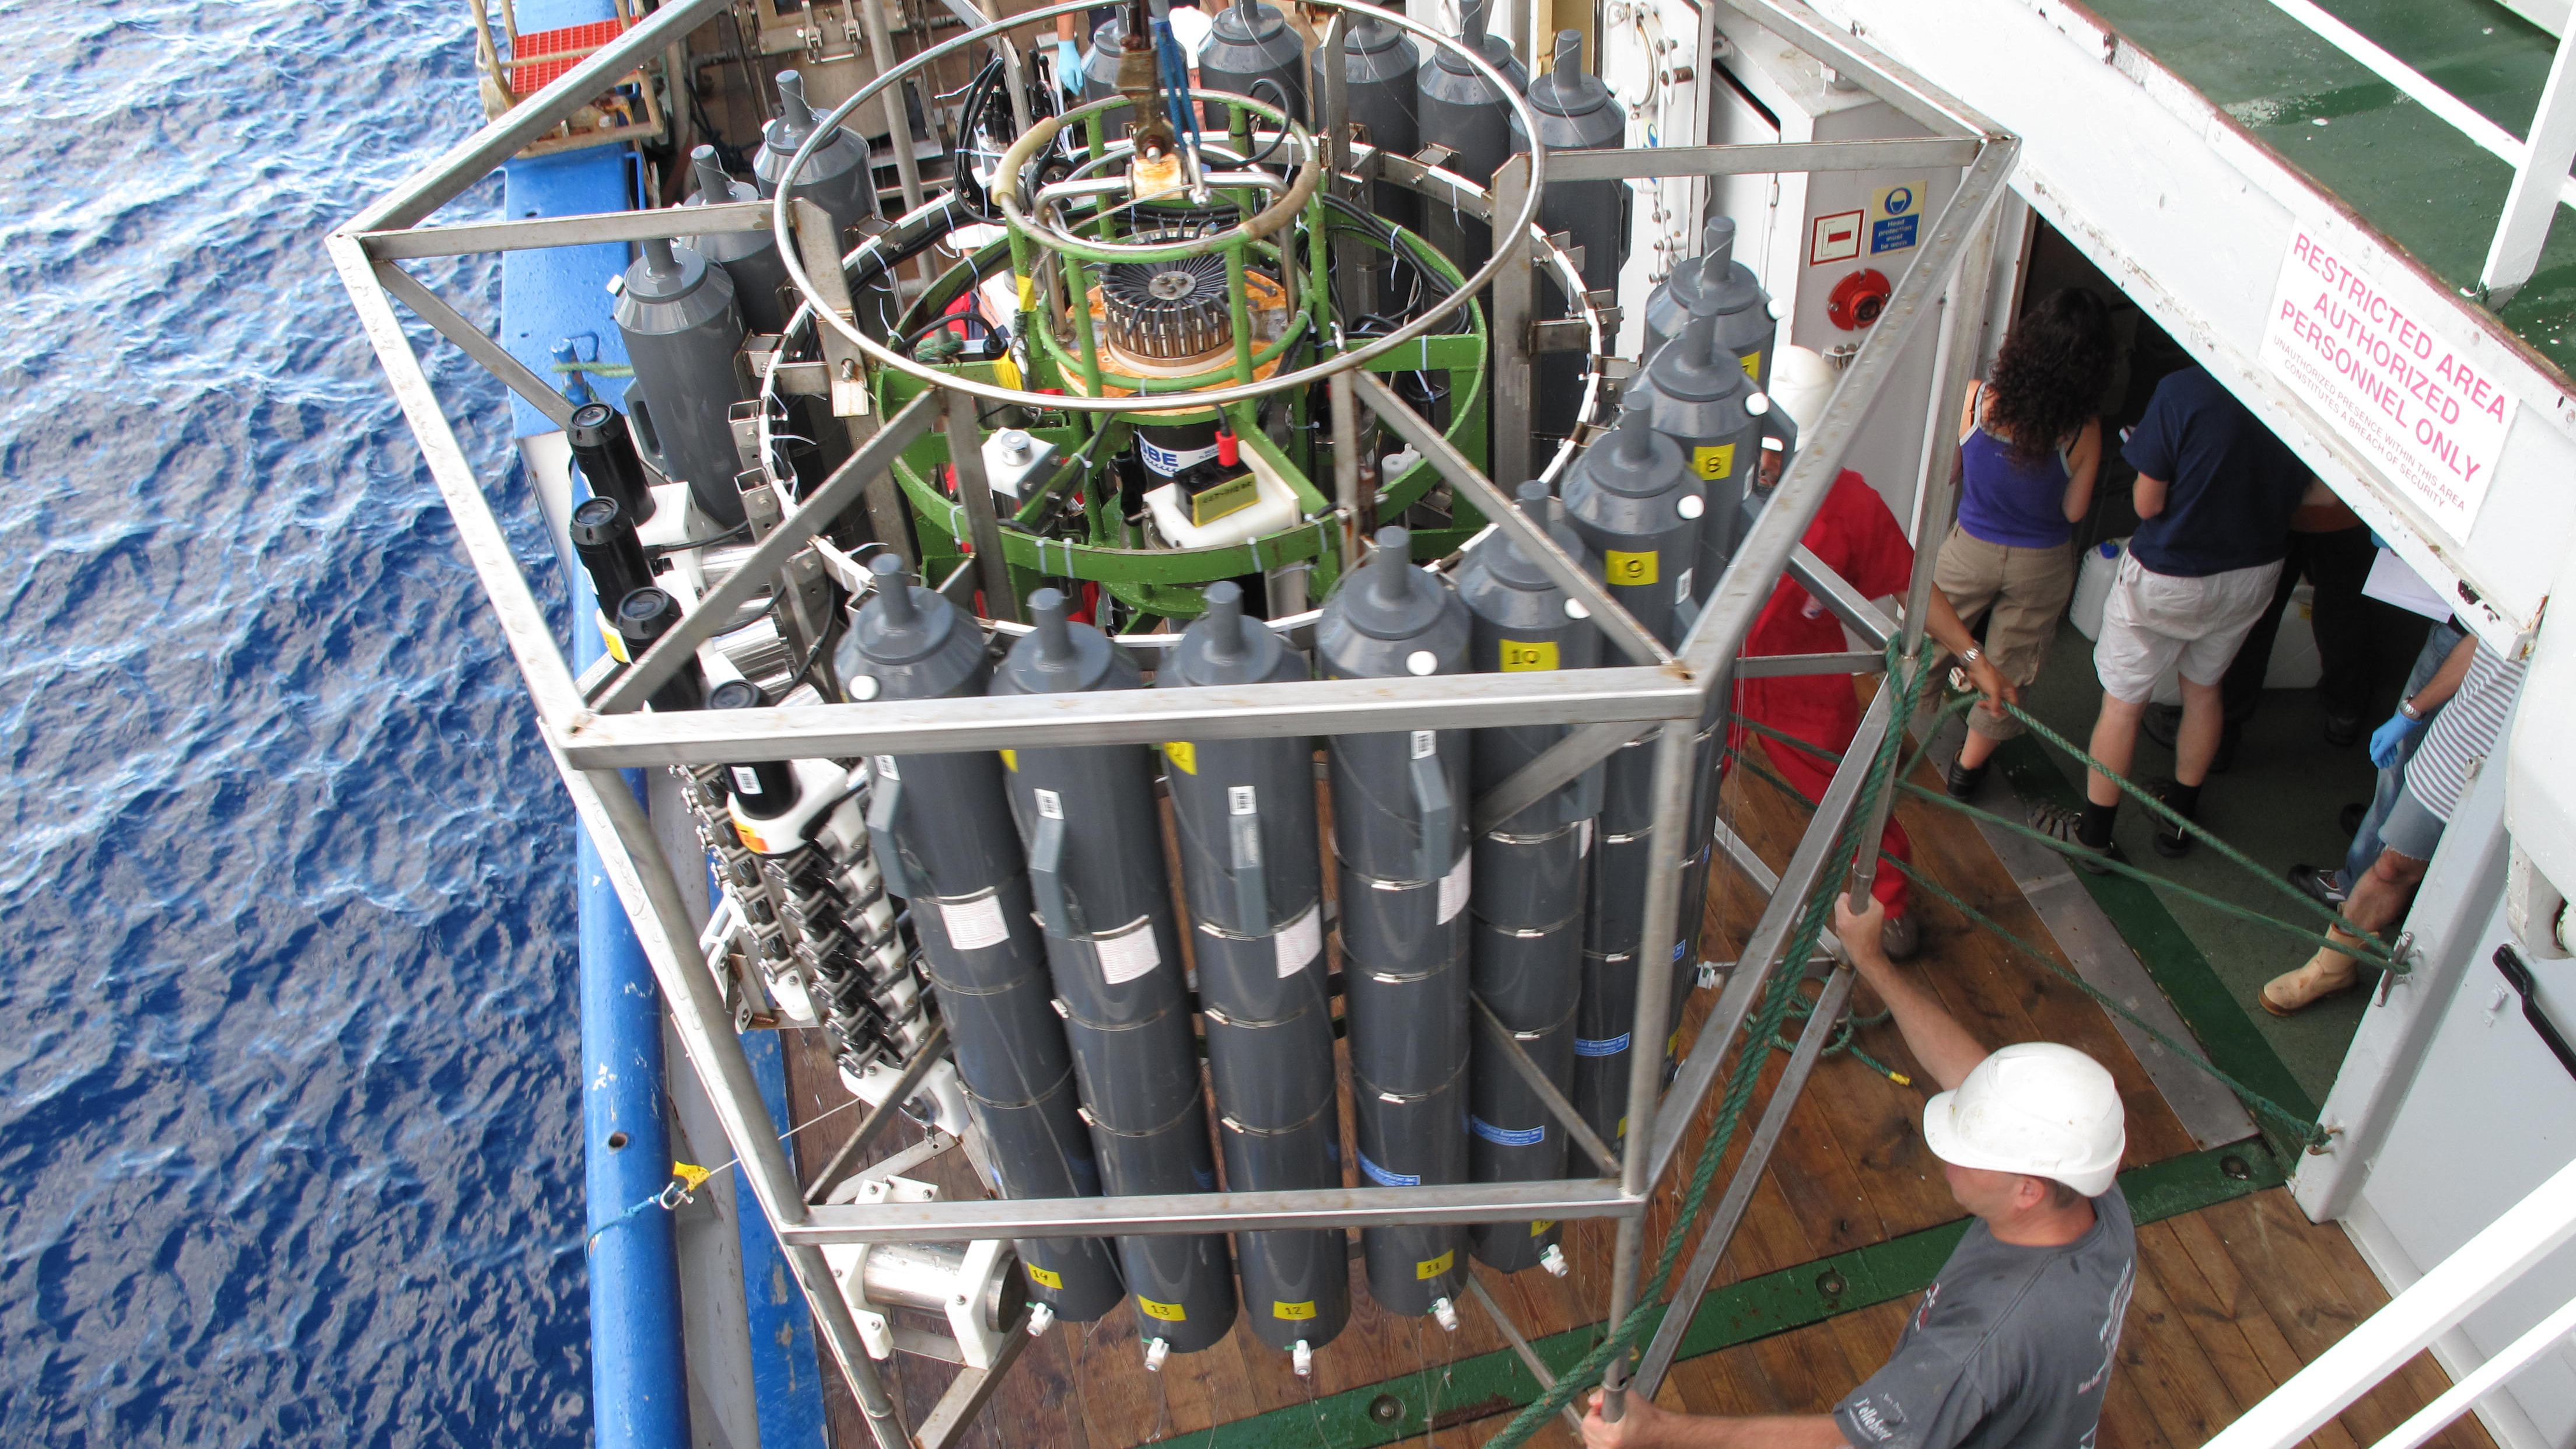 rosette sampling system used in the deep sea